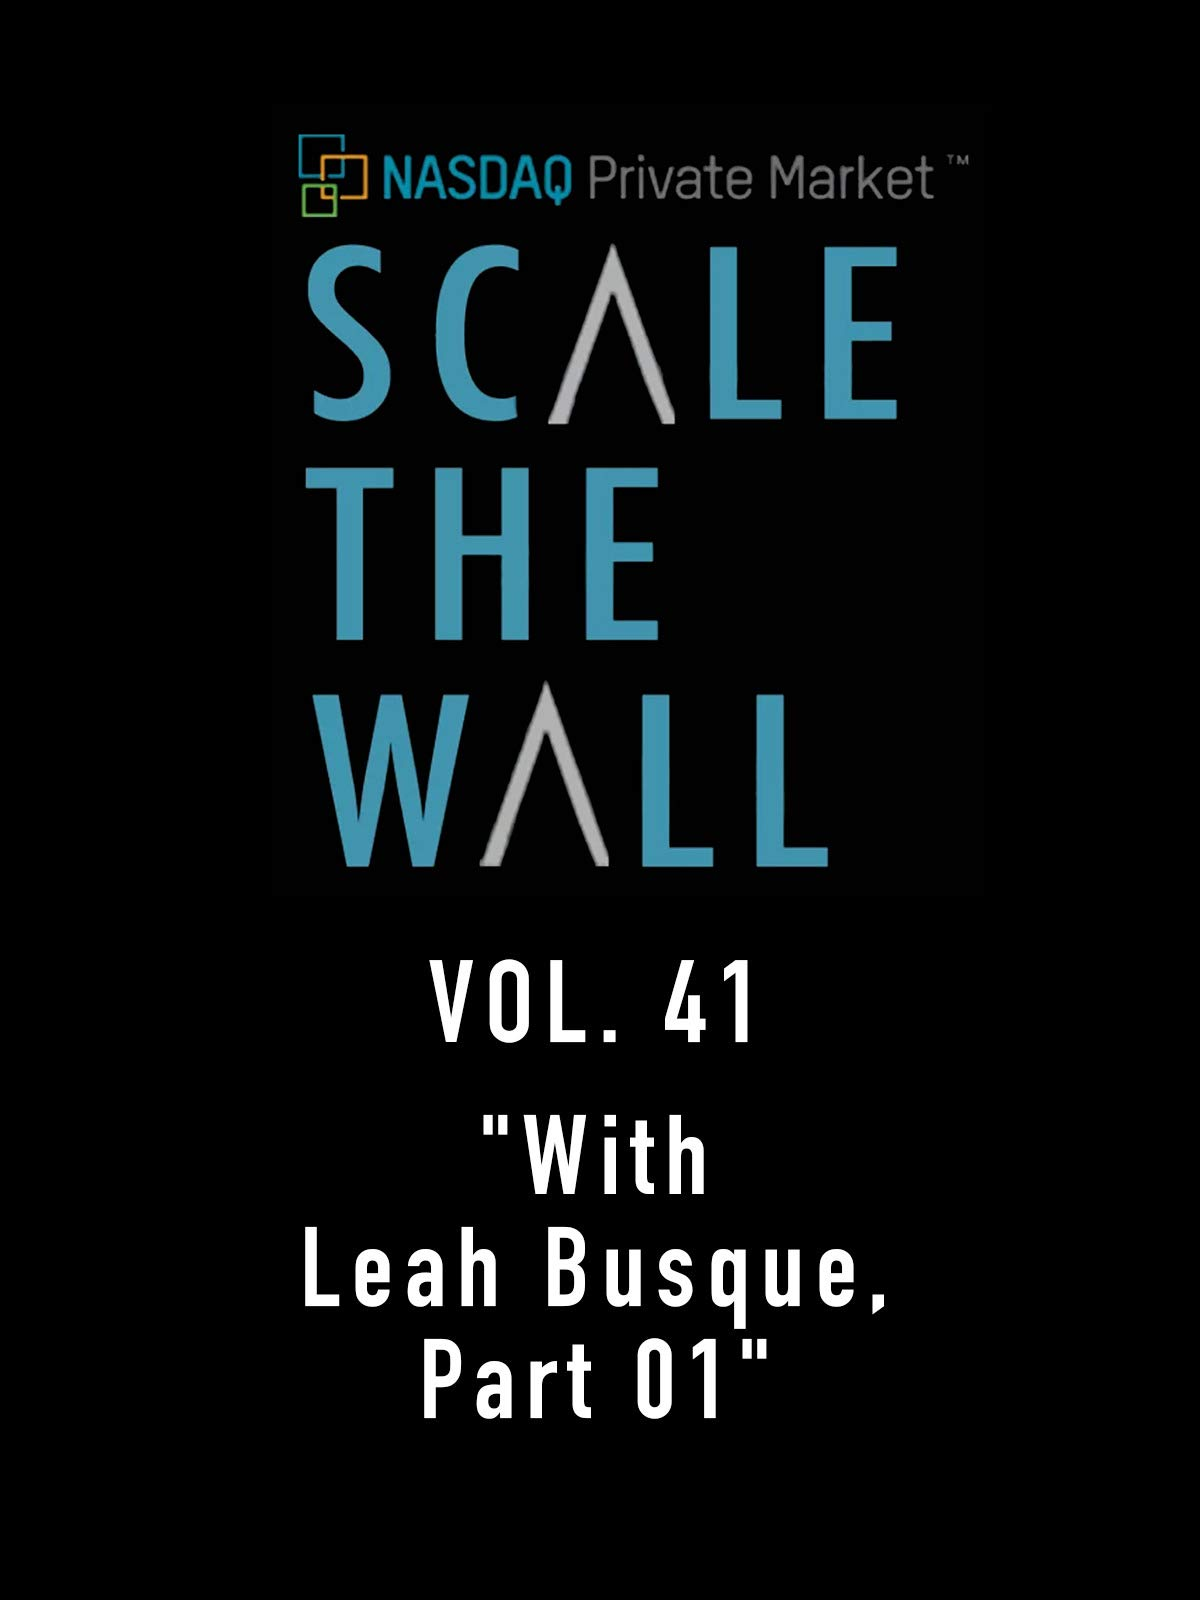 Scale the Wall Vol. 41